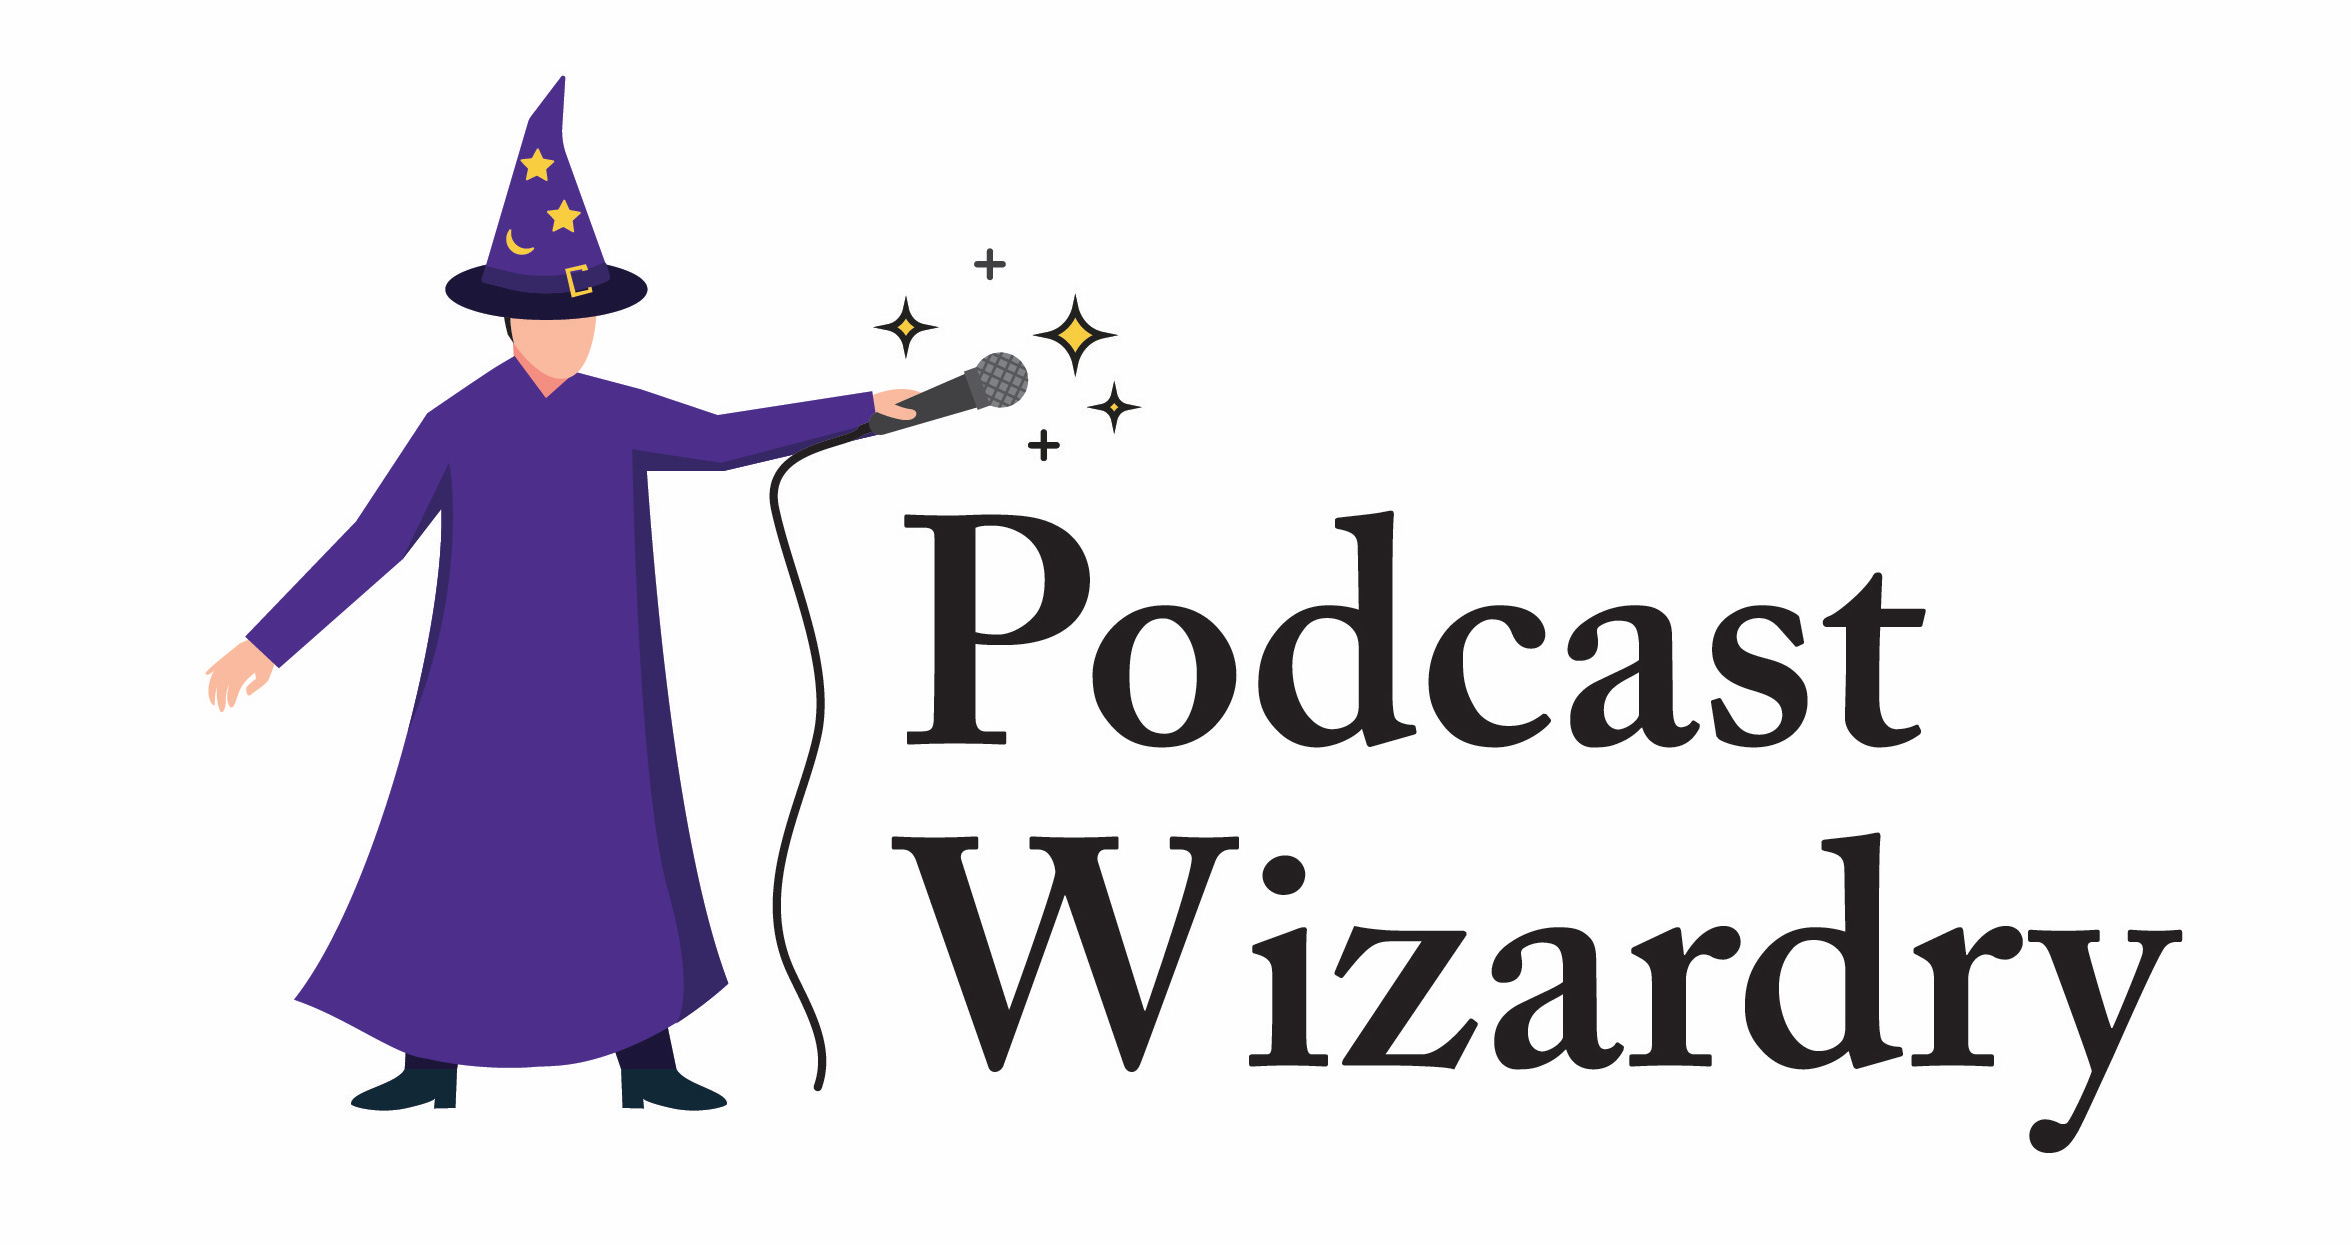 Podcast Wizardry